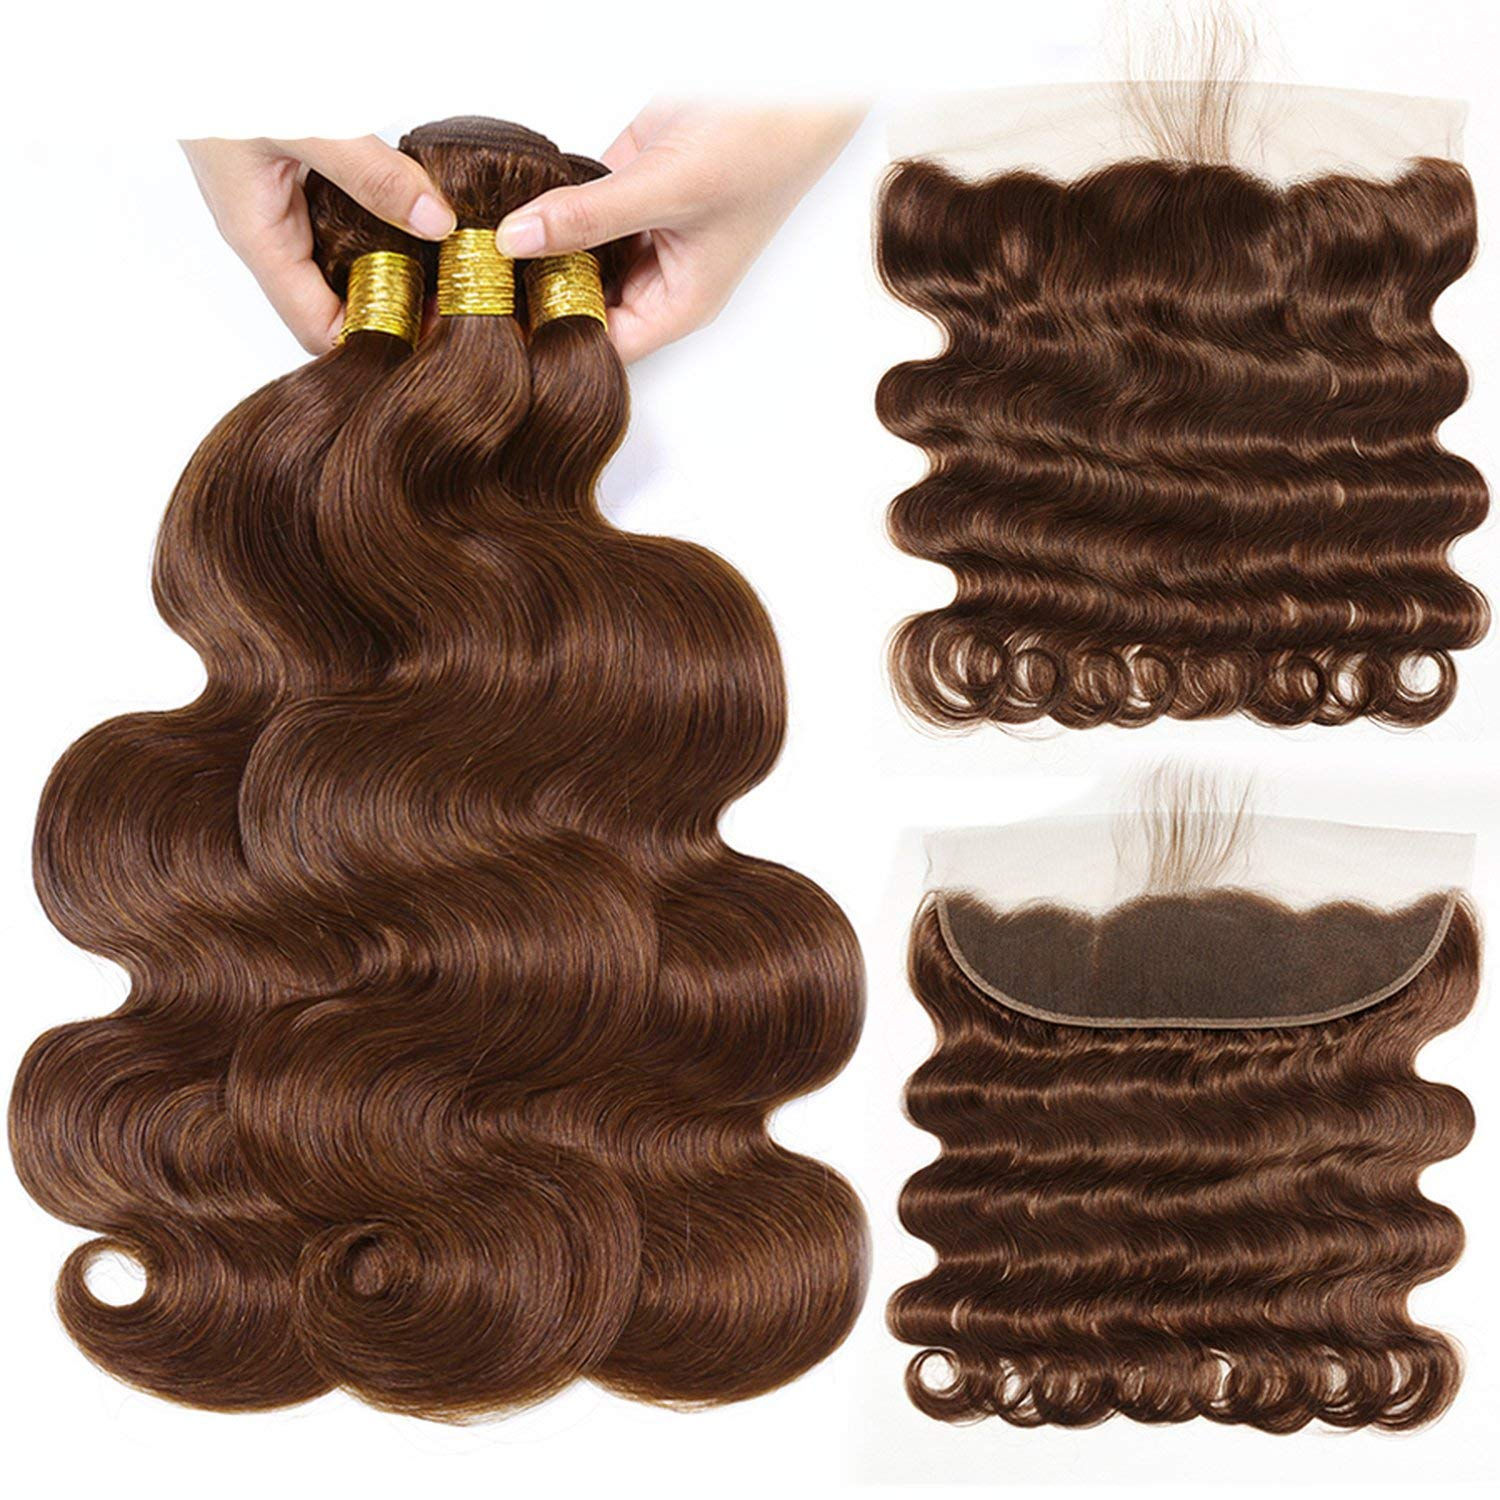 #4 Light Brown Body Wave Hair Bundles With Frontal Brazilian Hair Weave Bundles Human Hair Bundles Romantico NonRemy Hair Extension,20 22+18Closure,Light Brown nonremy 81H9ErnWxgL